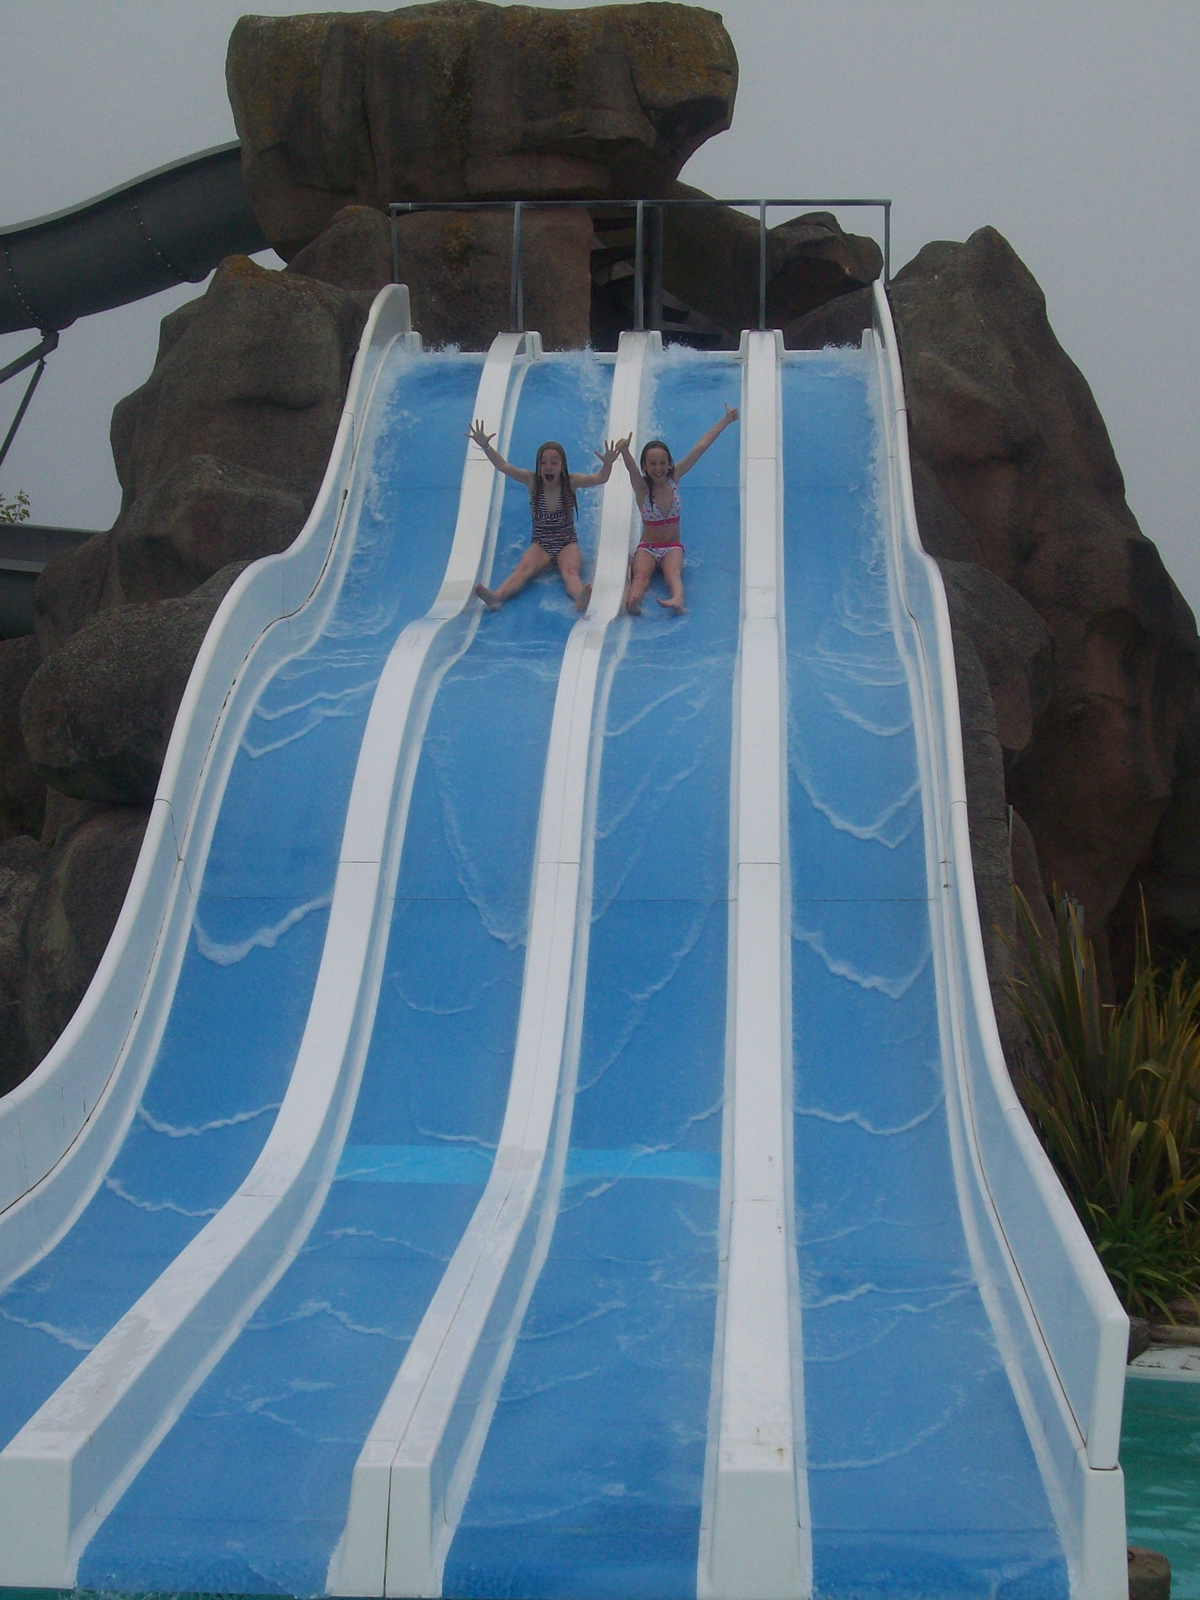 Eurocamp parc review - Le Ranolien - Waterpark